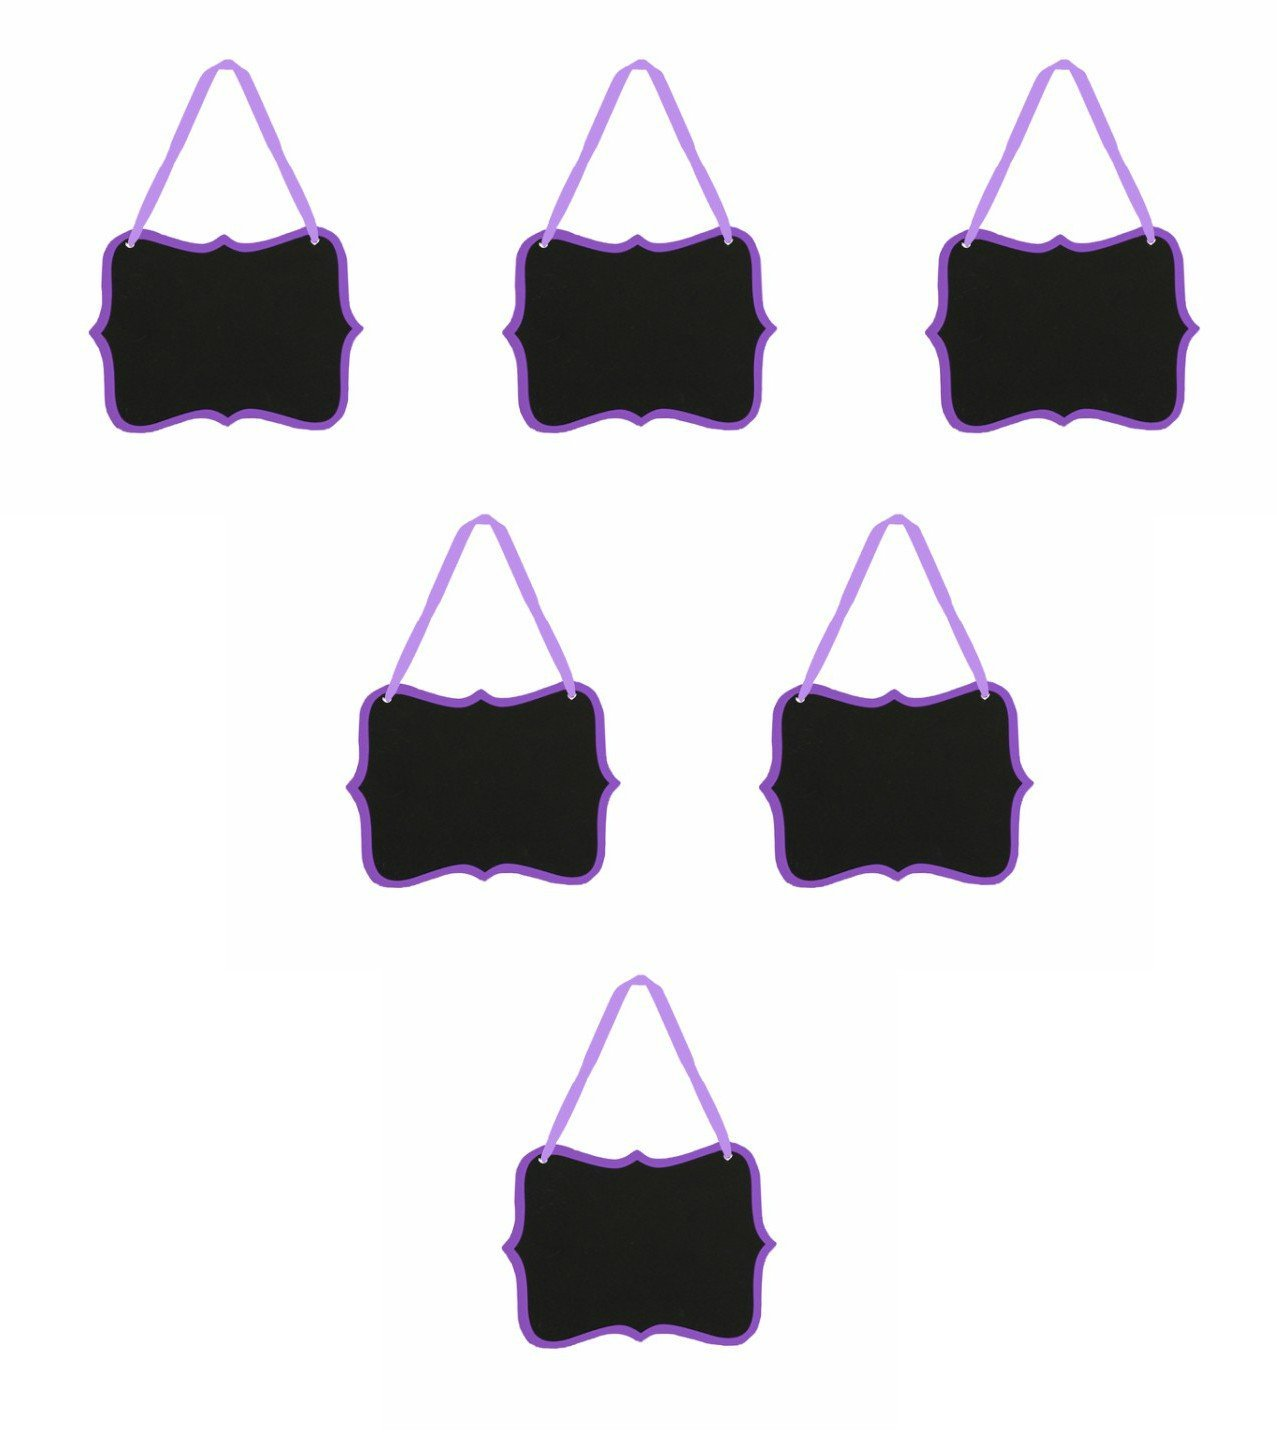 12pc Purple 5.25 x 3.5-inches Fancy Scroll Chalkboard Sign Message Board with String for Kitchen Pantry, Kids... by